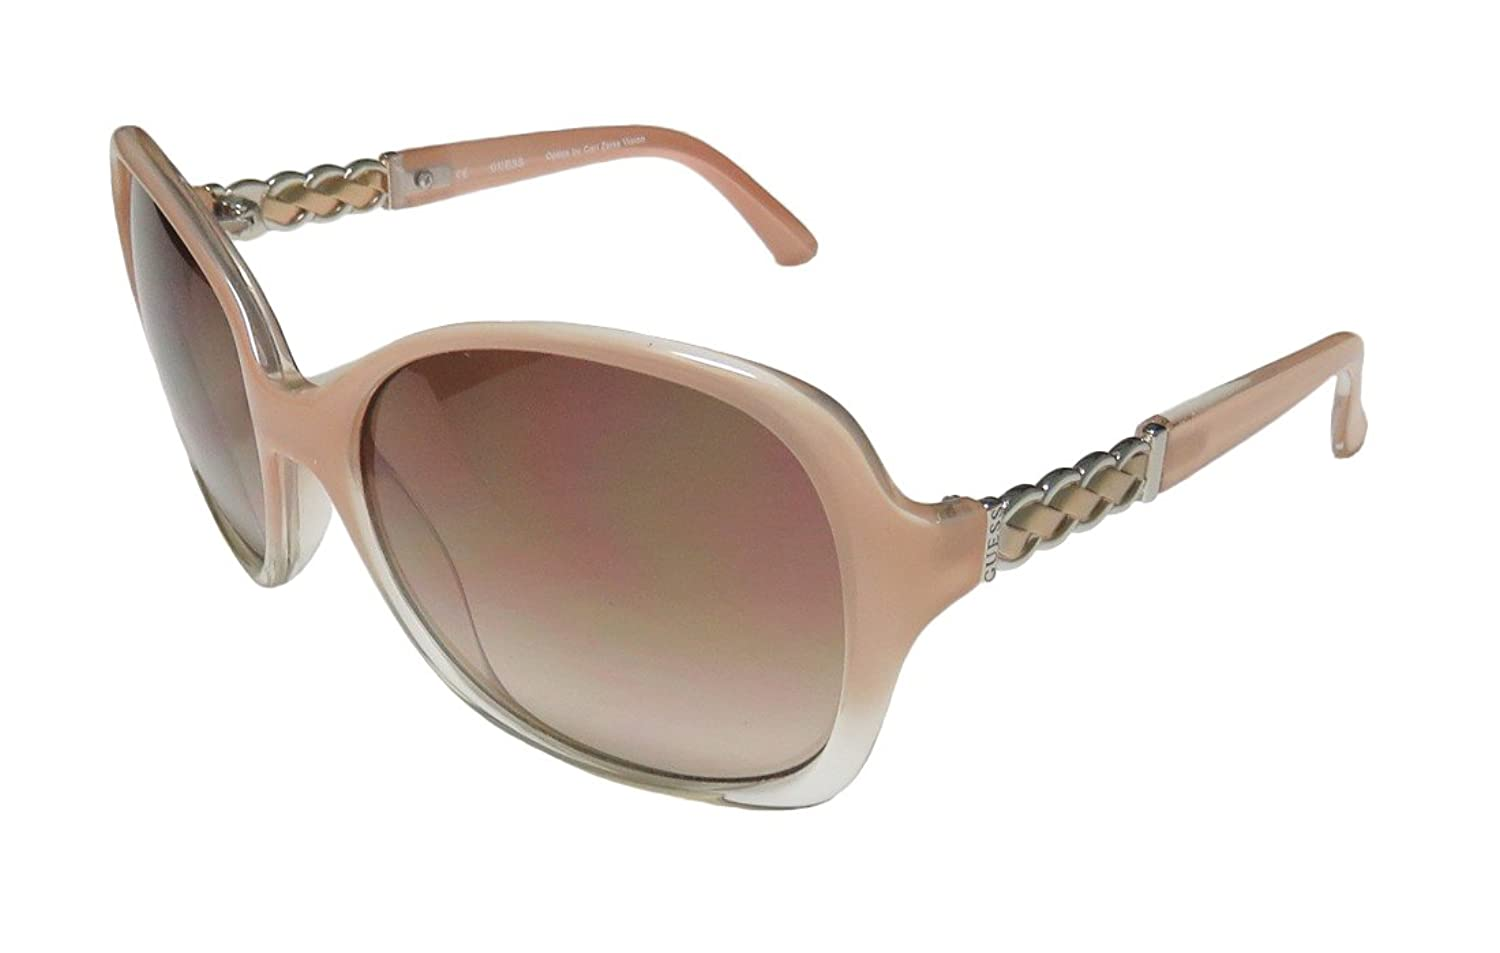 Guess sunglasses GU 7280 PE-34 Acetate plastic Nude - Light Gold Brown  Gradient: Amazon.co.uk: Clothing